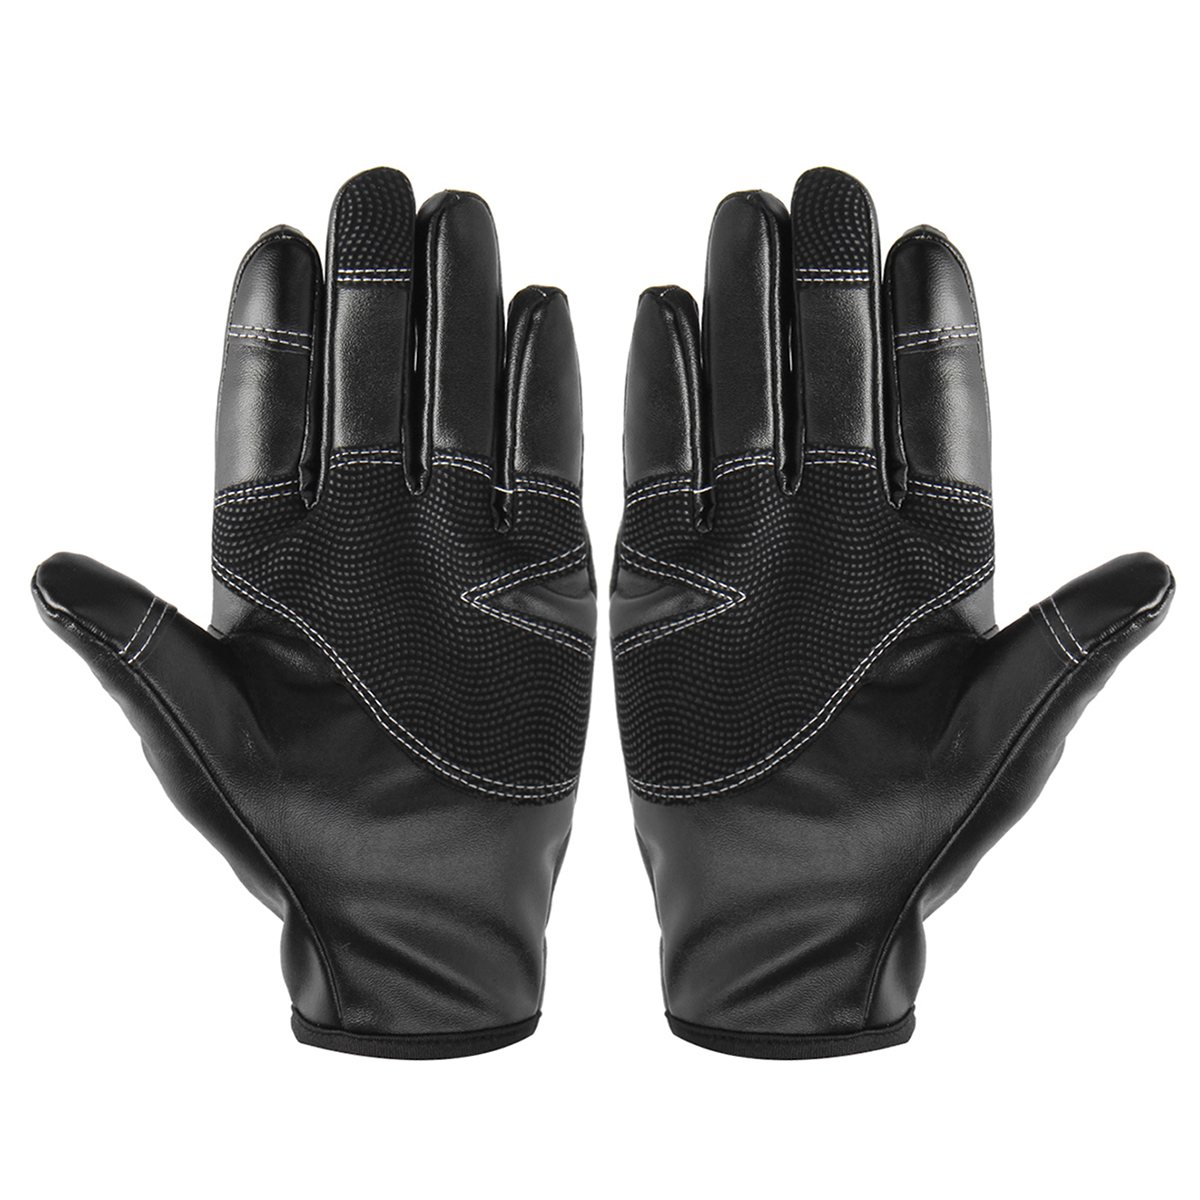 1 pair of Black gloves 3 Size Windproof and waterproof Suitable for skiing cycling